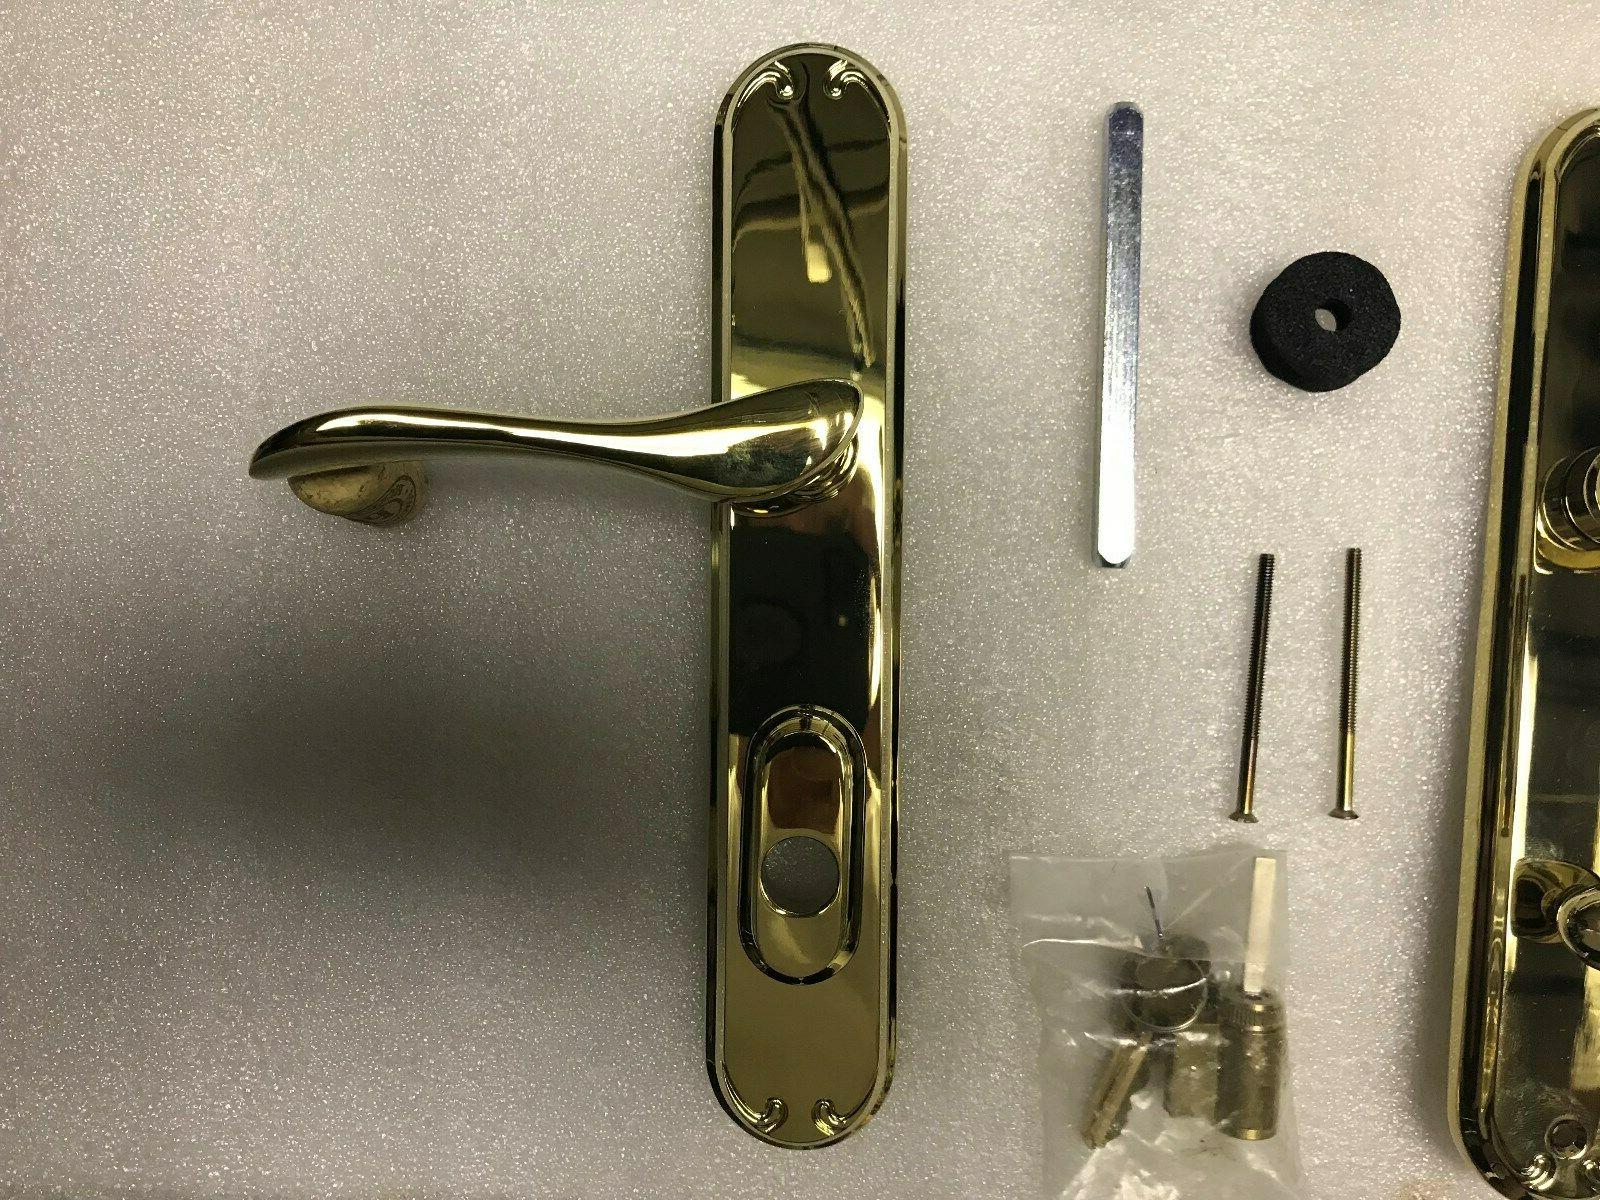 PELLA FRENCH DOOR HANDLE SHINY HAND WITH KEY CYLINDER AND TWO KEYS